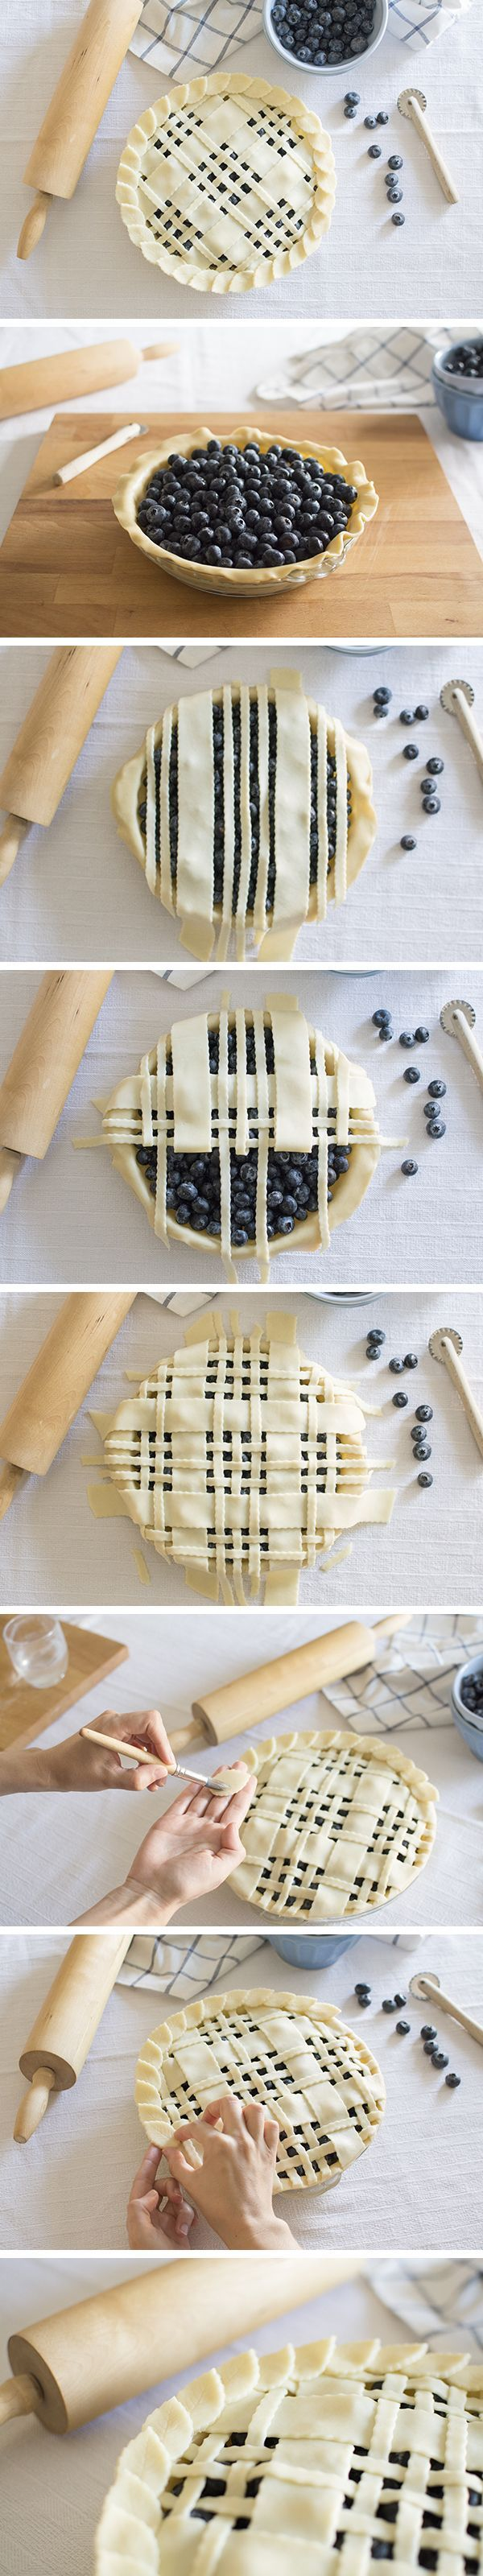 Blueberry pie with lattice and leaves design pie crust Tarta de arándanos con enrejado y